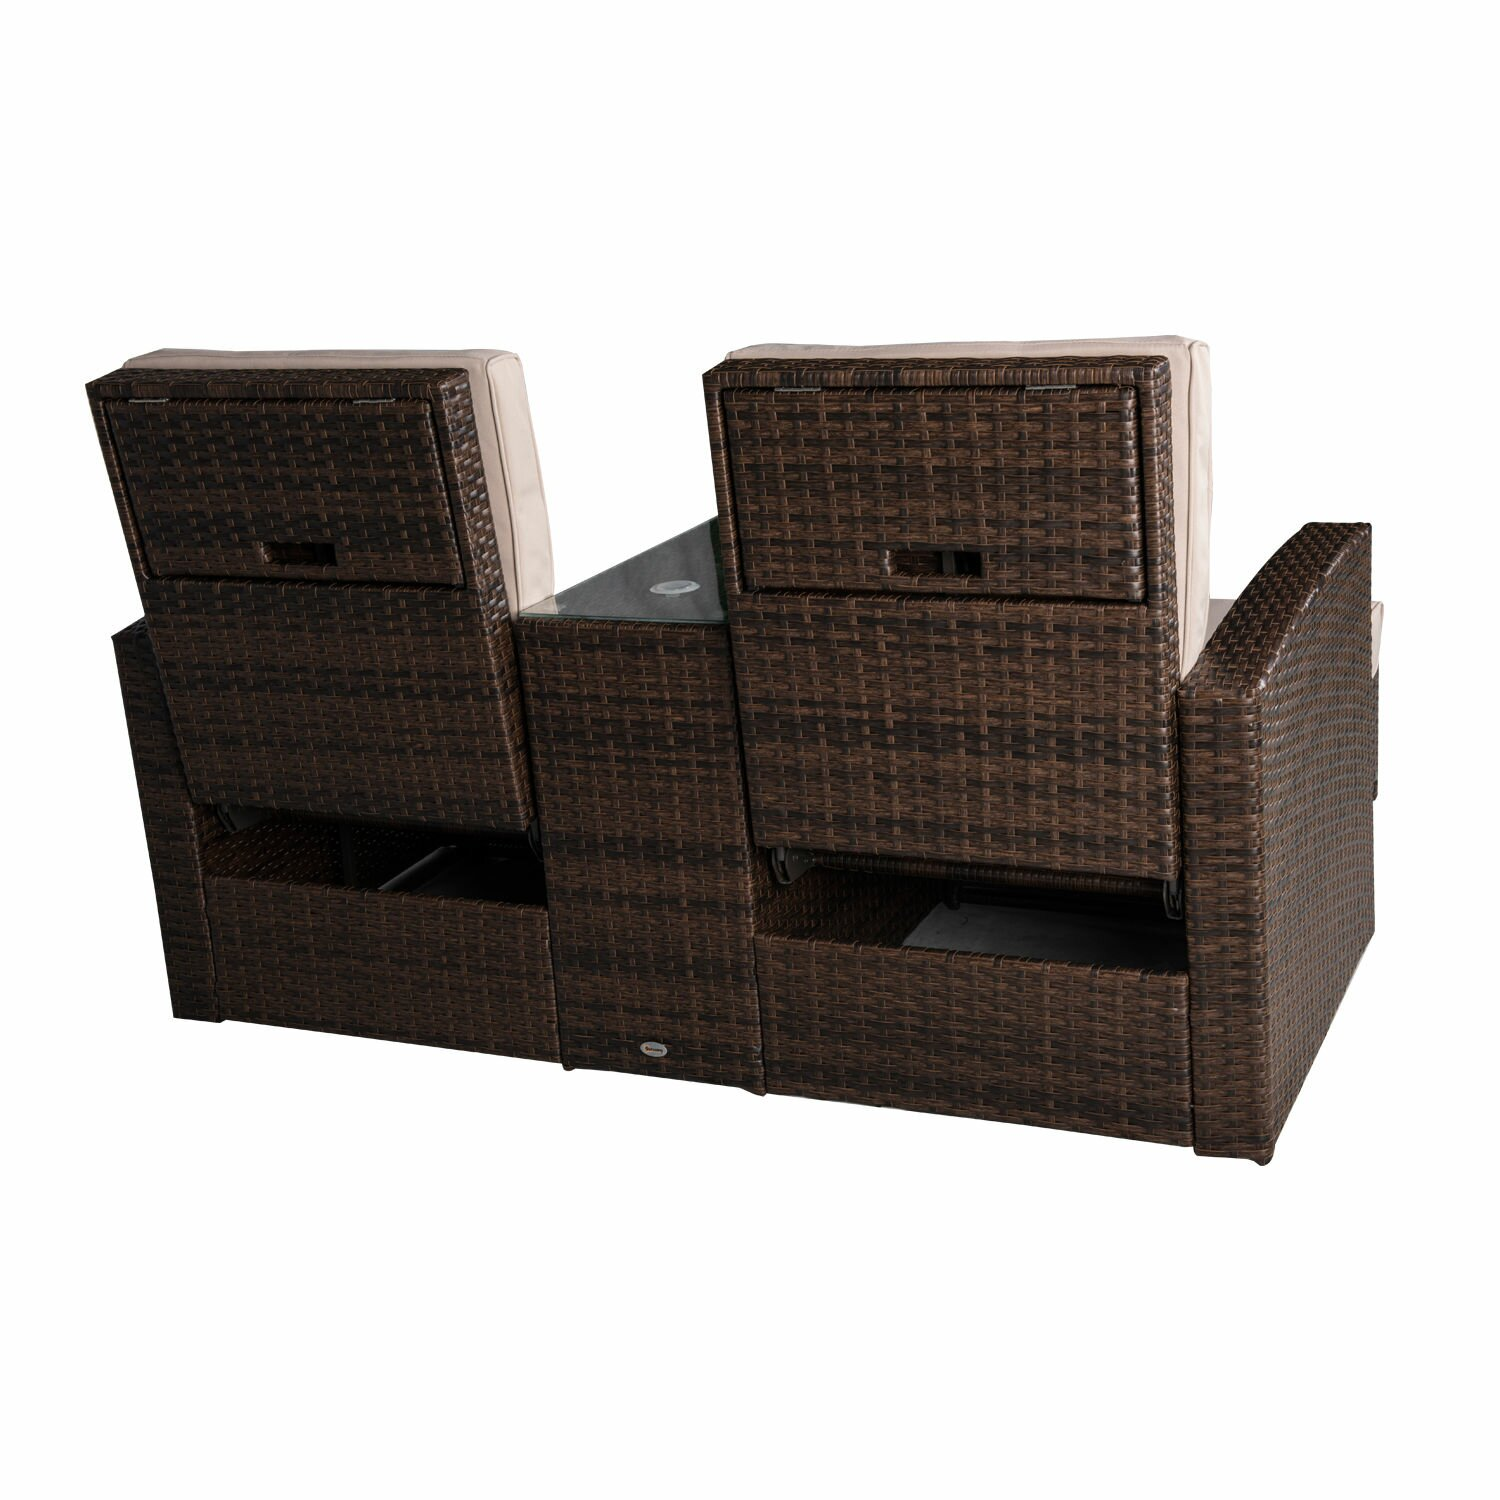 Darby Home Co Americana 3 Piece Outdoor Rattan Wicker ...